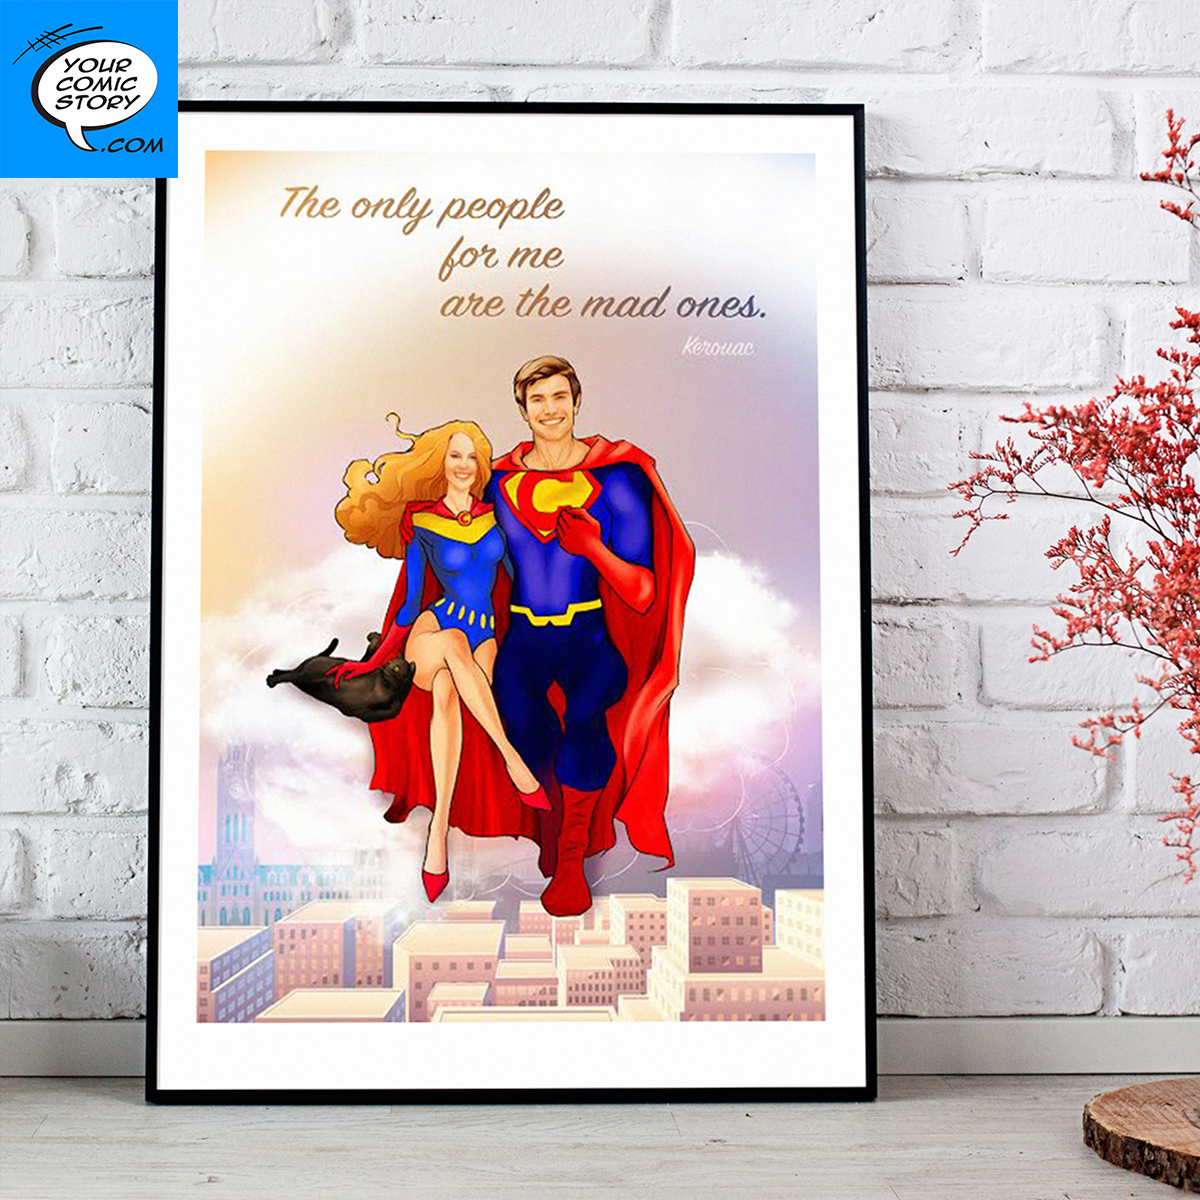 Amazing Paper Anniversary Gift Ideas | Your Comic Story